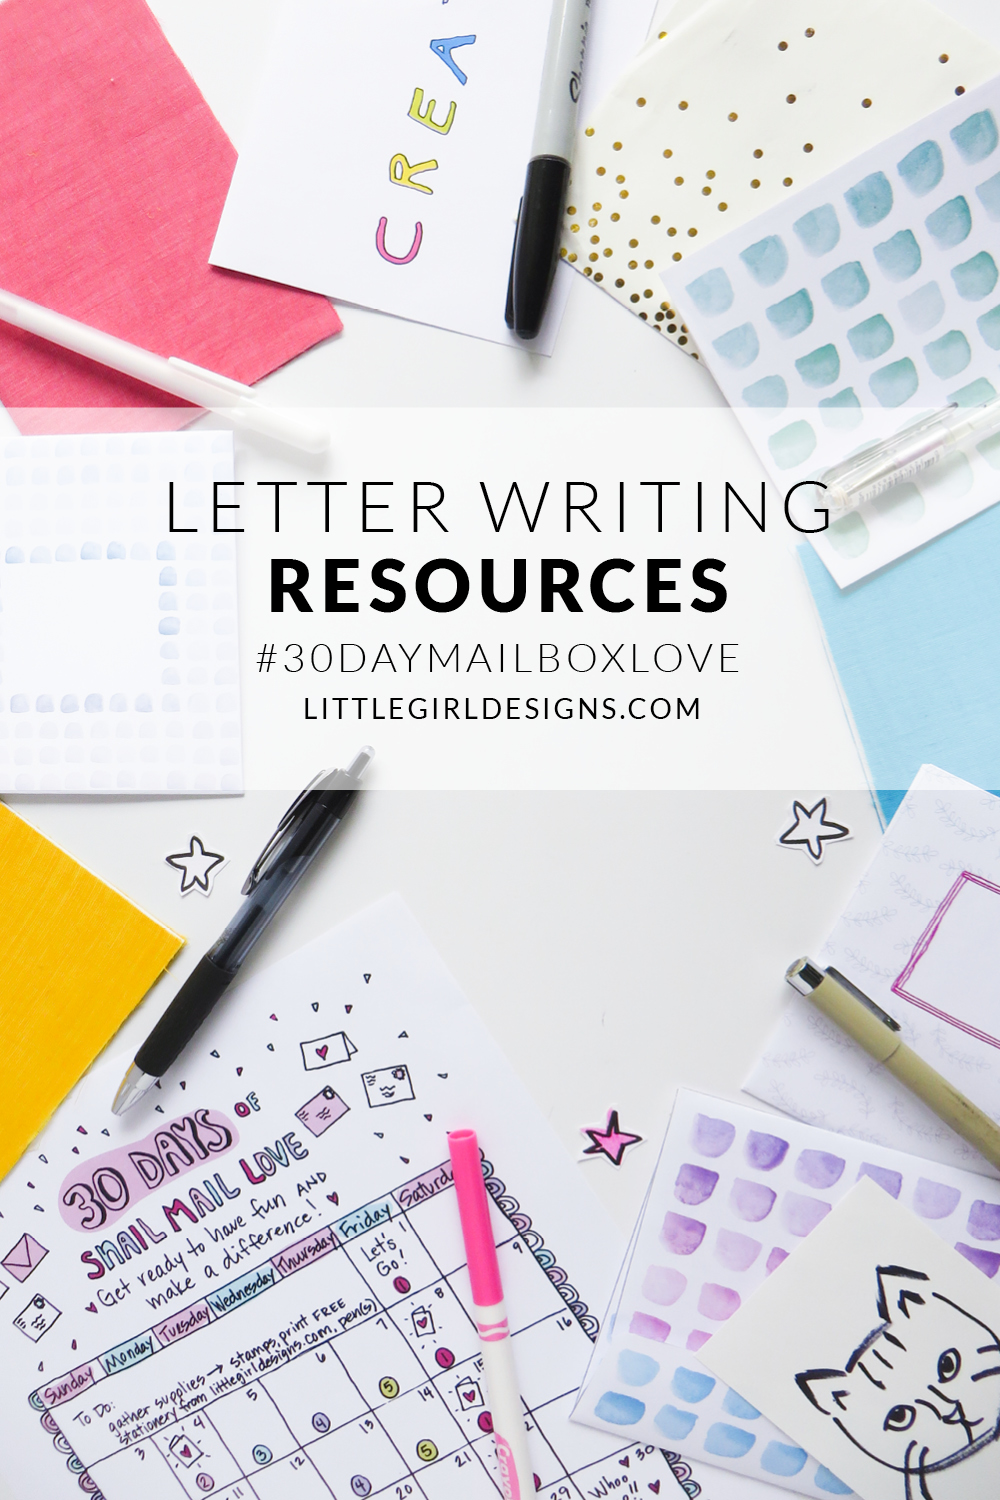 Looking for some fun letter-writing resources? I'm sharing several of my favorites today as I'm kicking off a month of #snailmail posts on the blog. Come see if your favorites made the list!